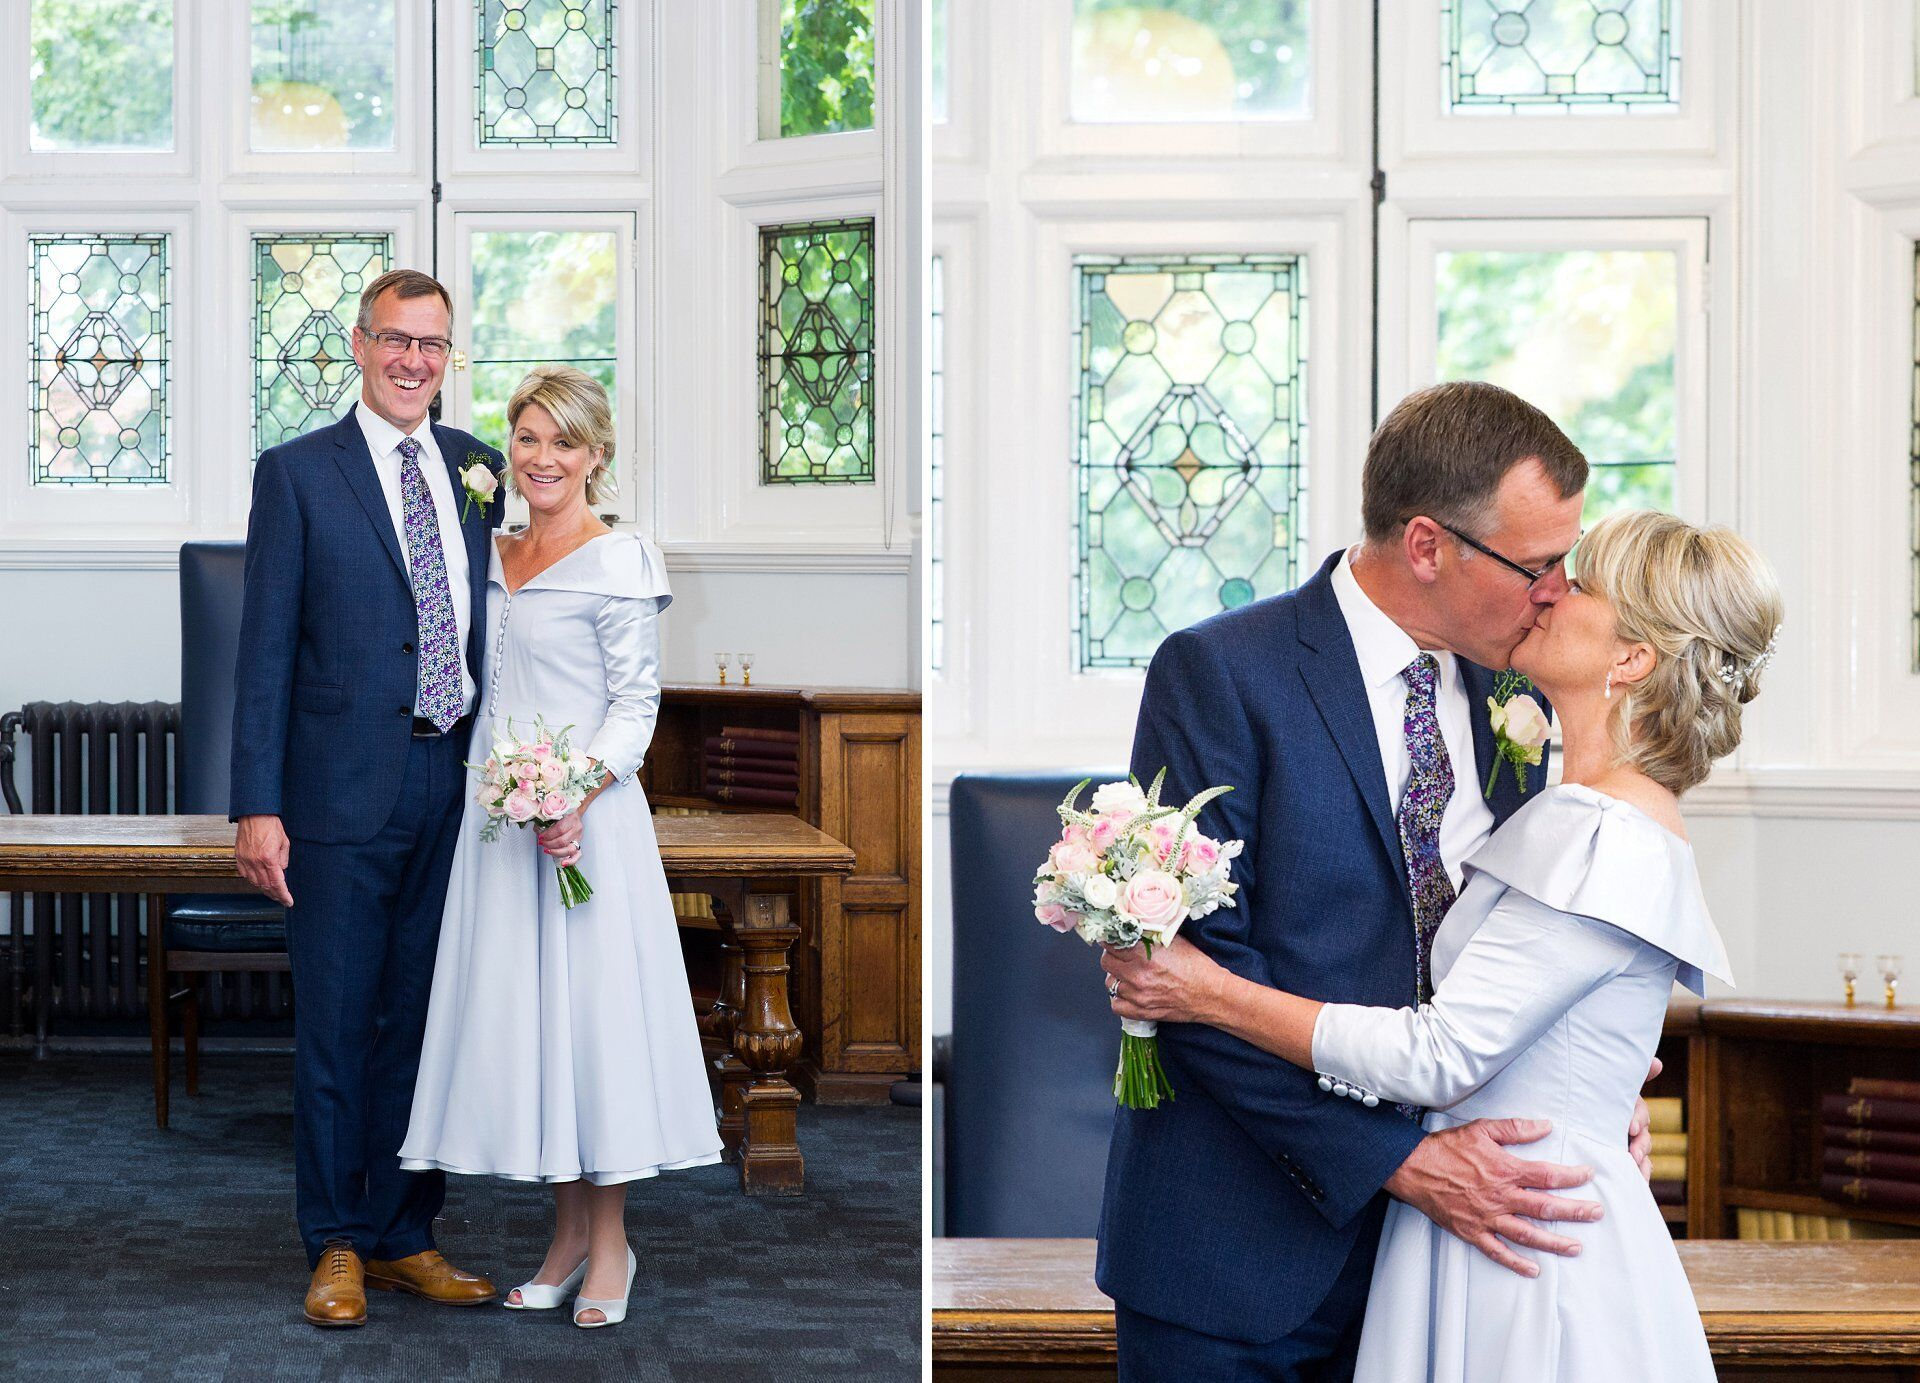 emma duggan photography and a bride and groom at westminster register office